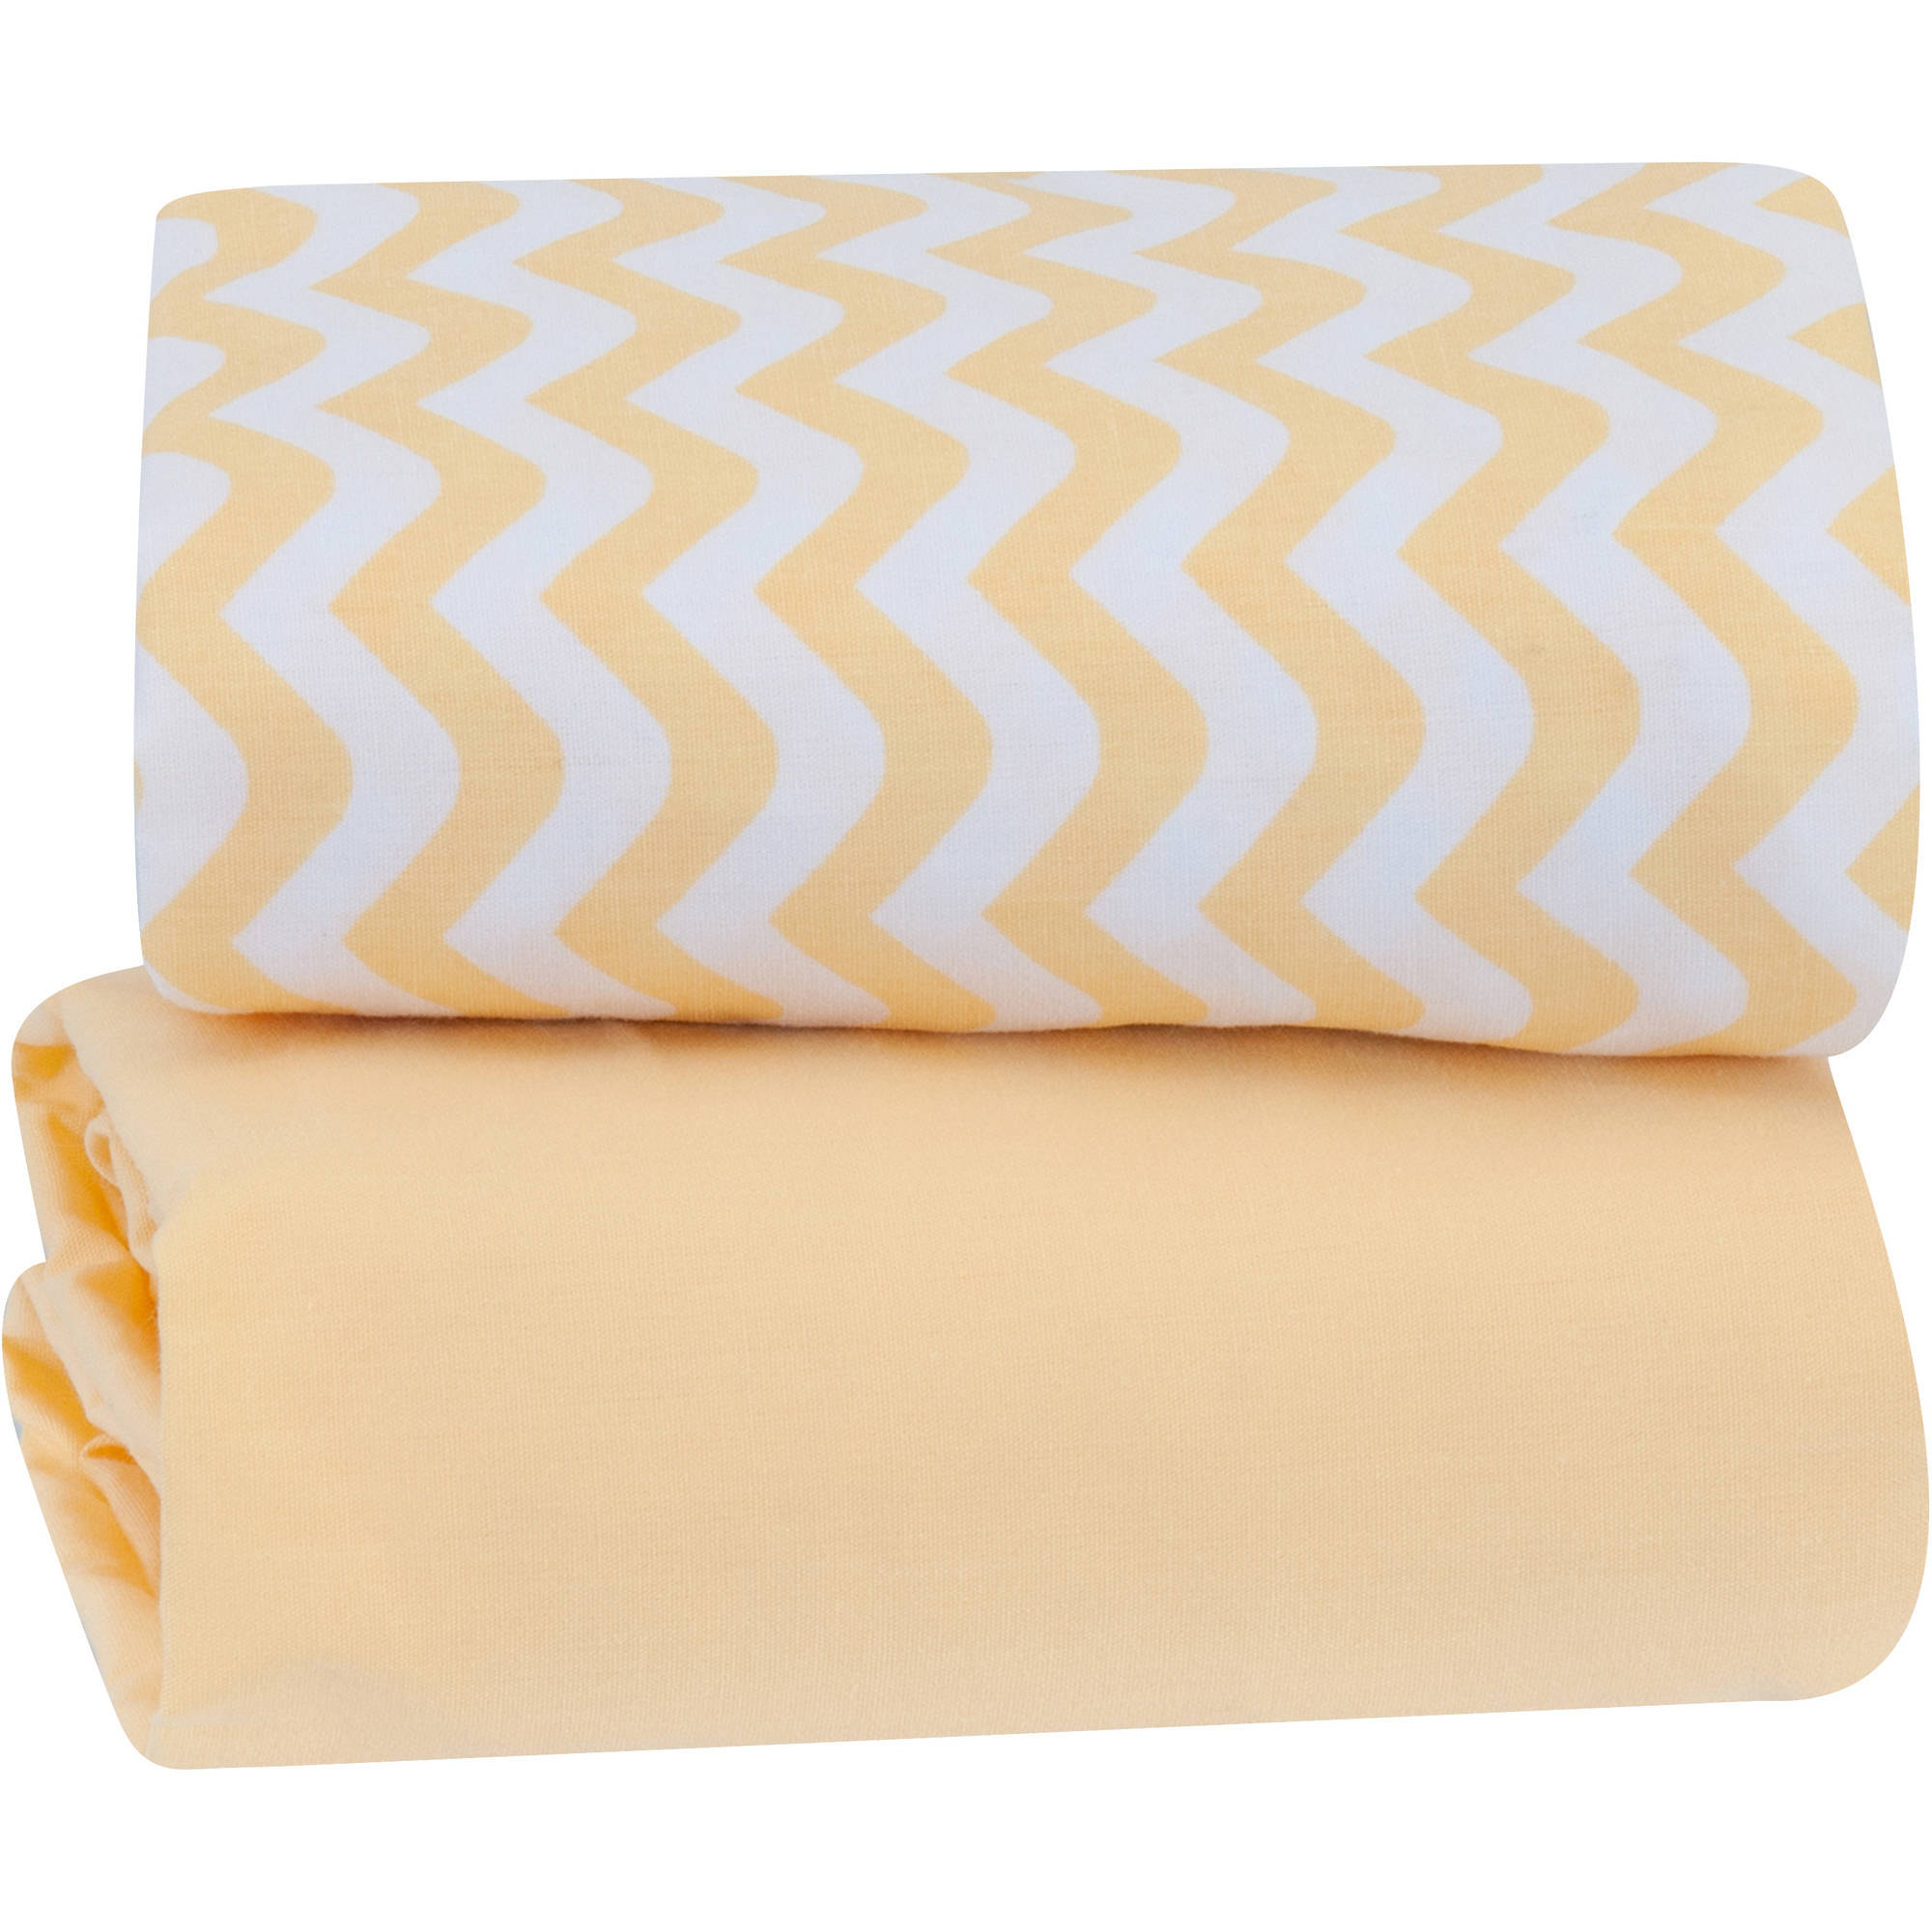 Tl Care Cotton Percale Fitted Mini Crib Sheet Grey Zigzag